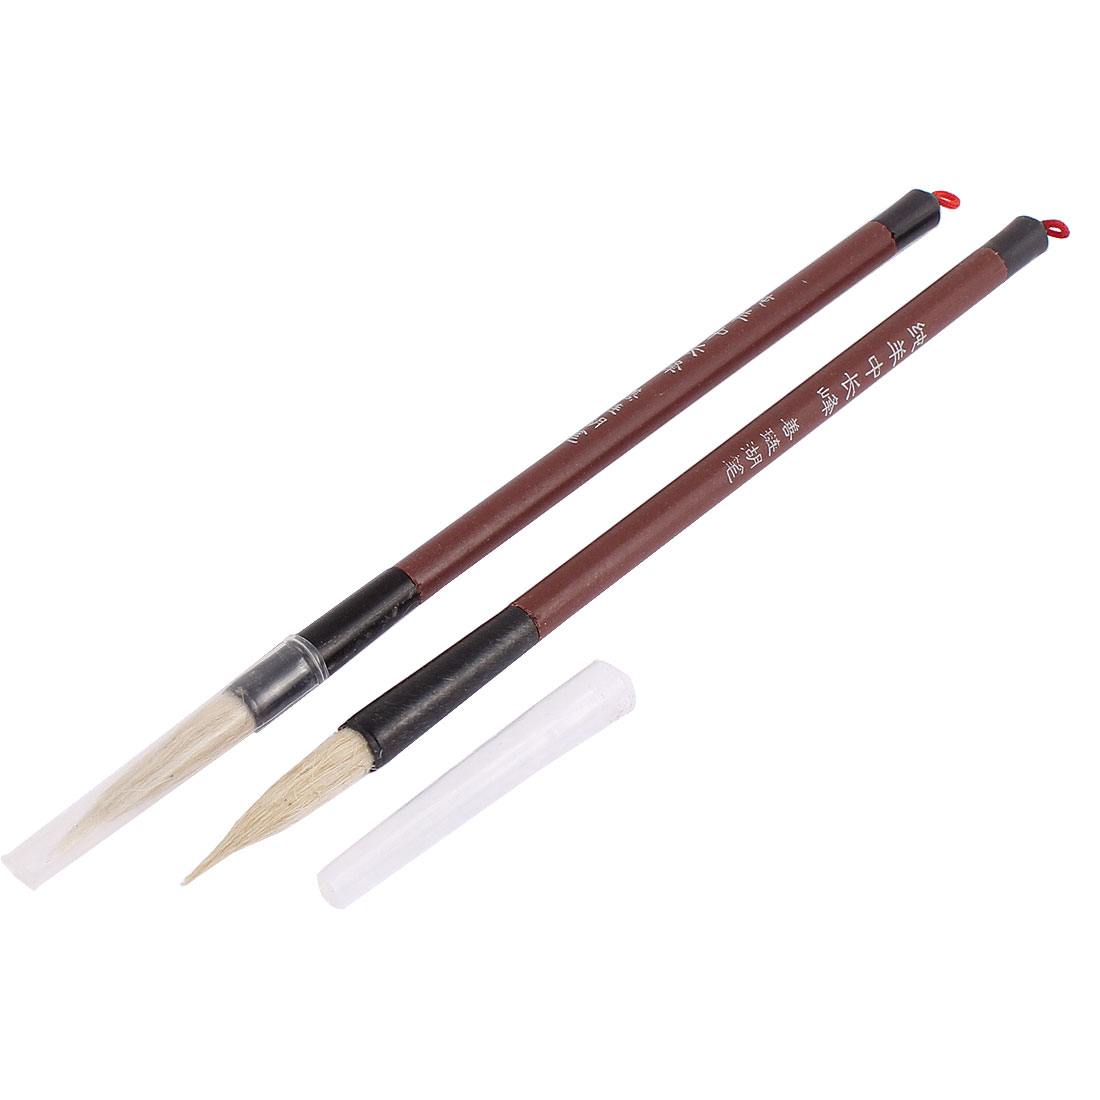 Faux Fur Head Chinese Calligraphy Hand Writing Brush 2PCS